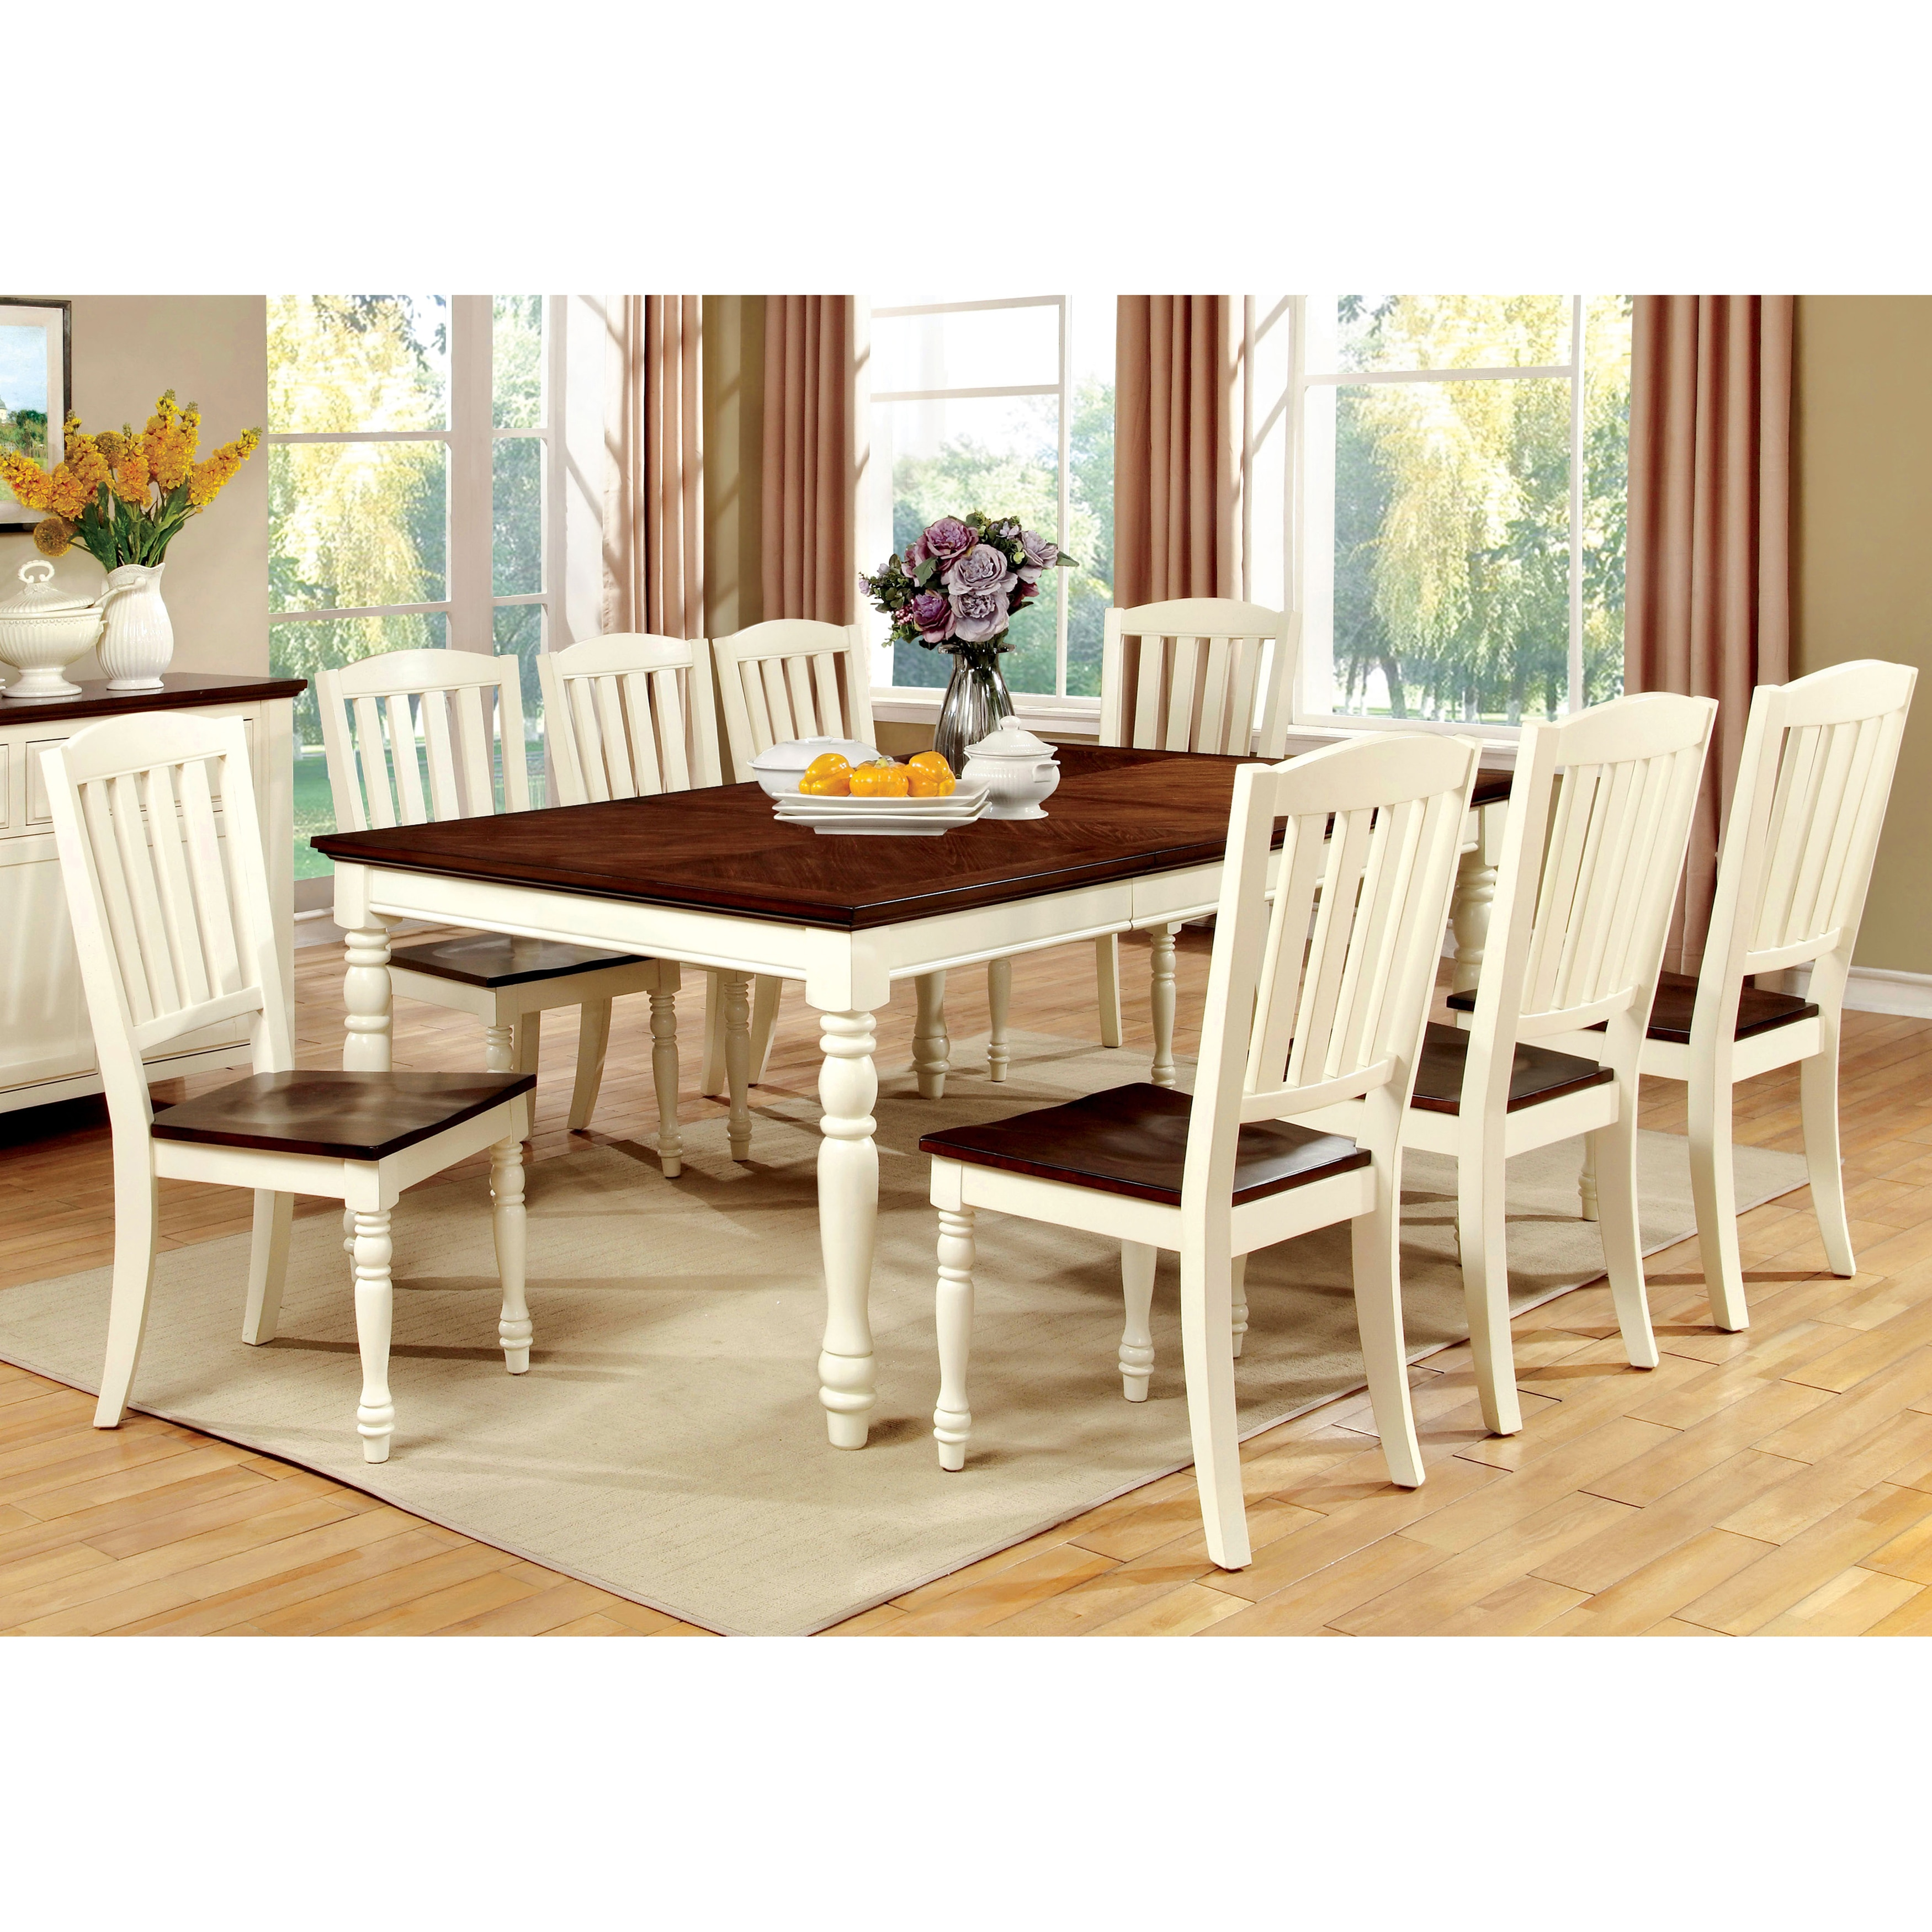 Shop The Gray Barn Ravens Way Cottage Style Two Tone Dining Table